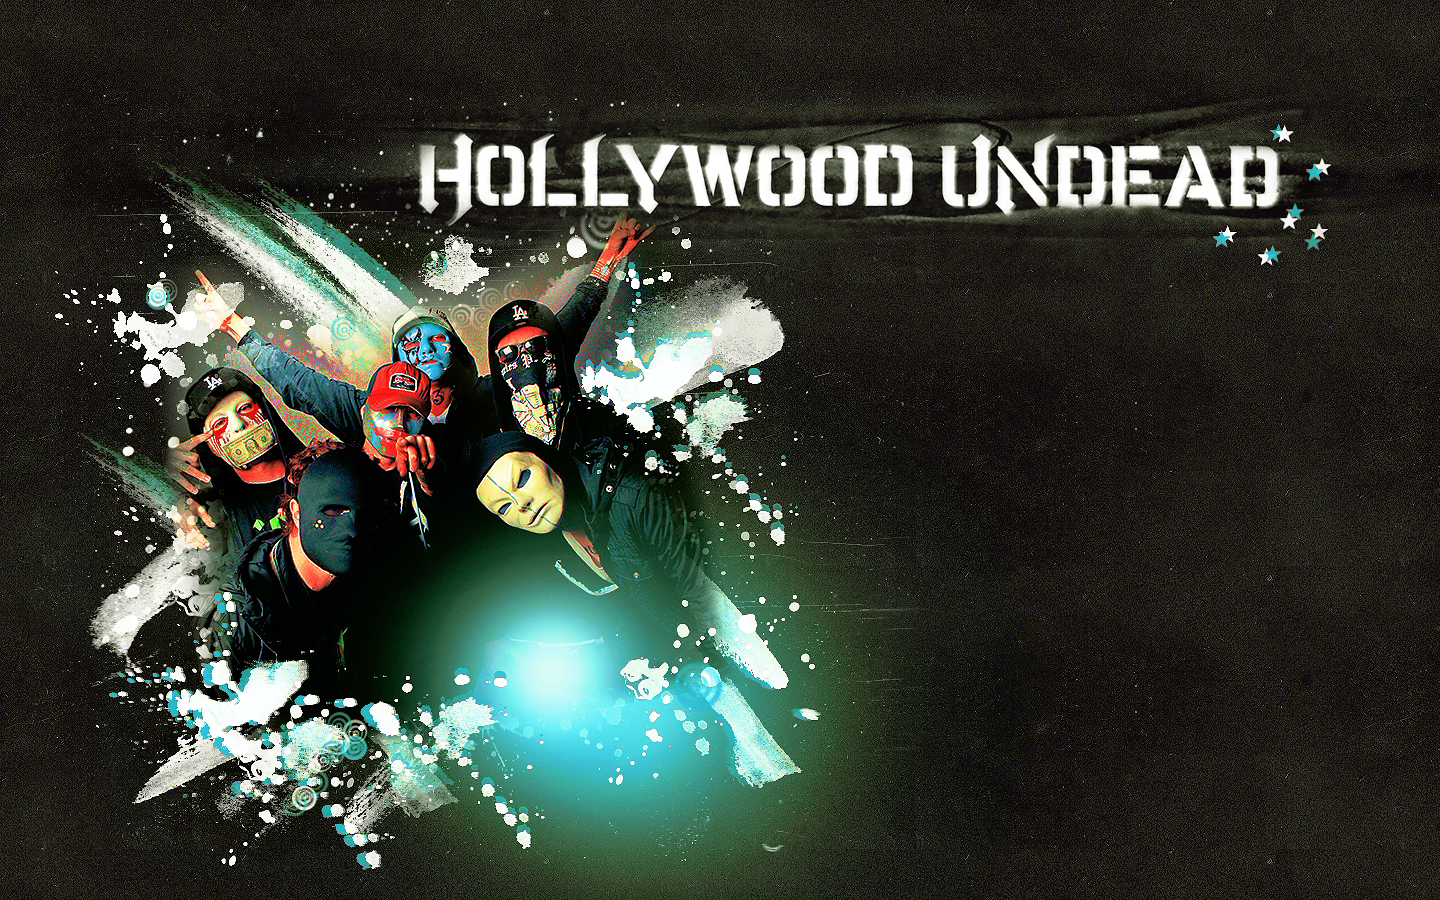 Hollywood Undead Wallpaper by Tunity 1440x900